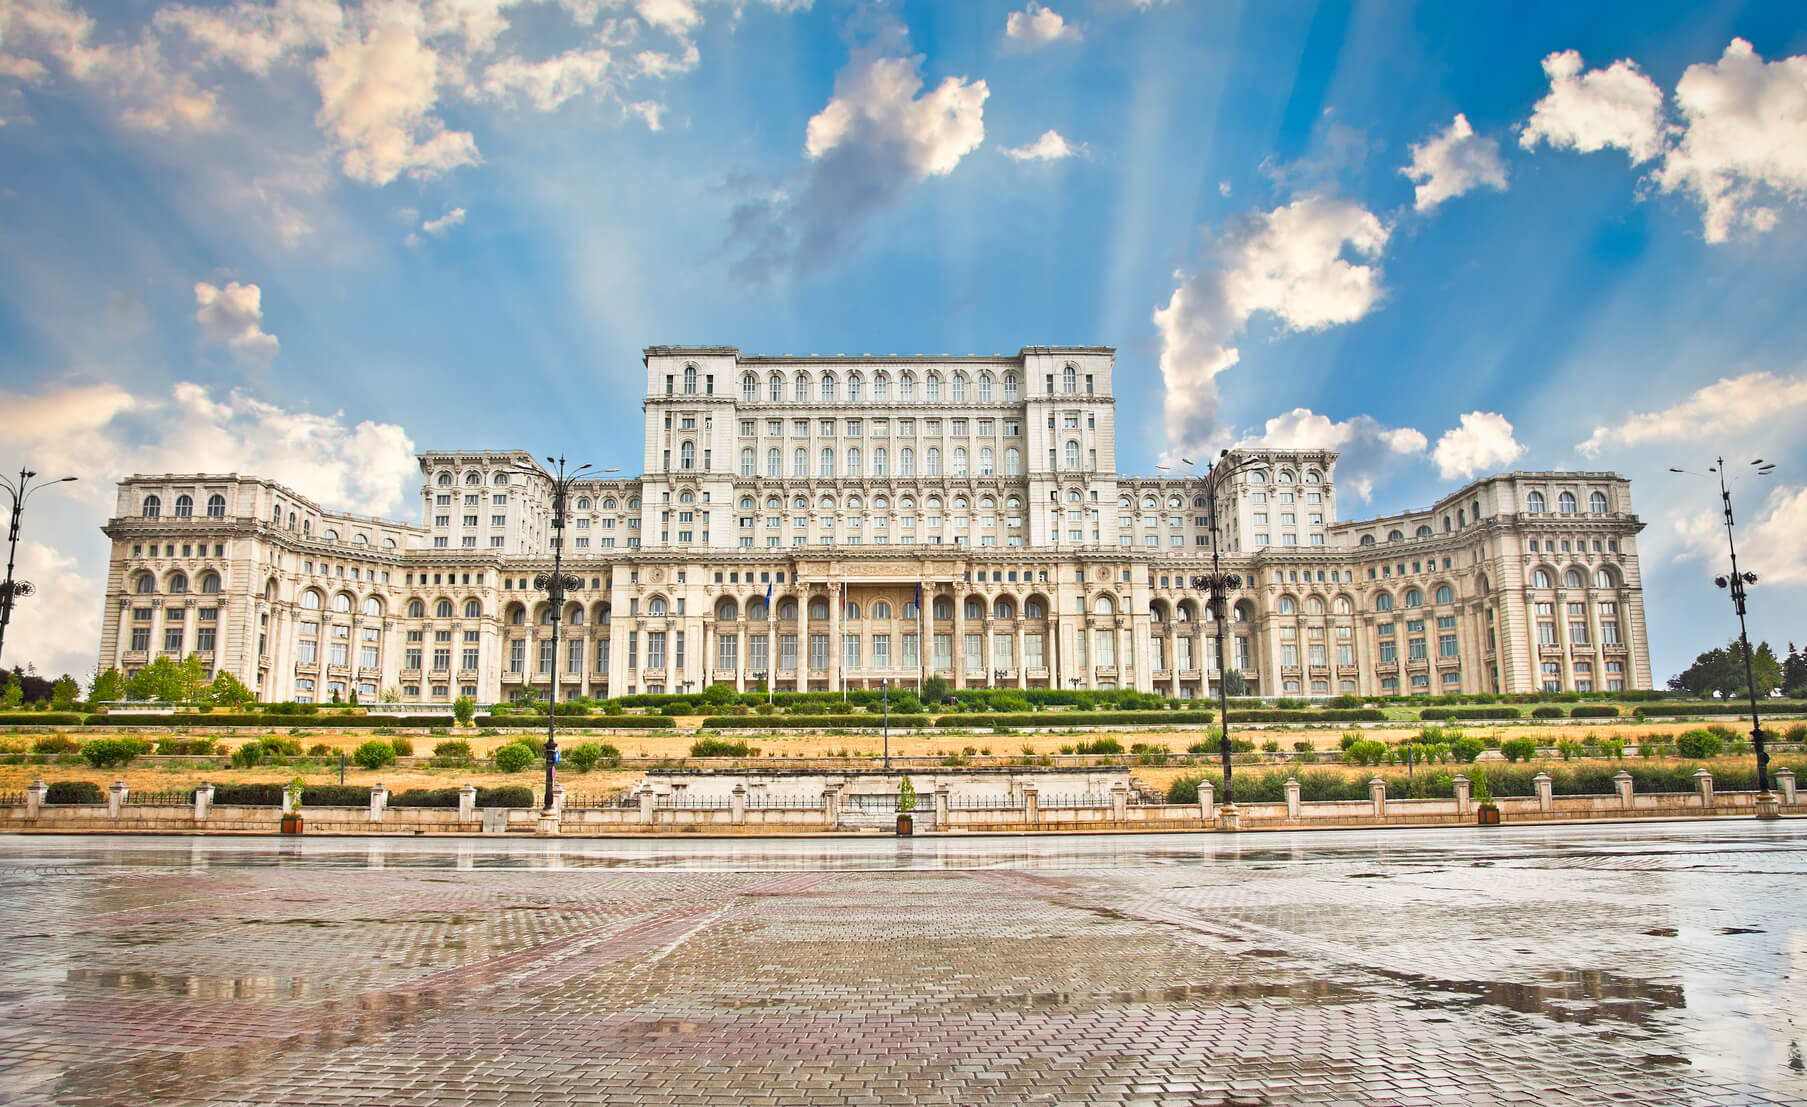 Tel Aviv, Israel to Bucharest, Romania for only $36 USD roundtrip (& vice versa for €29) (members only)